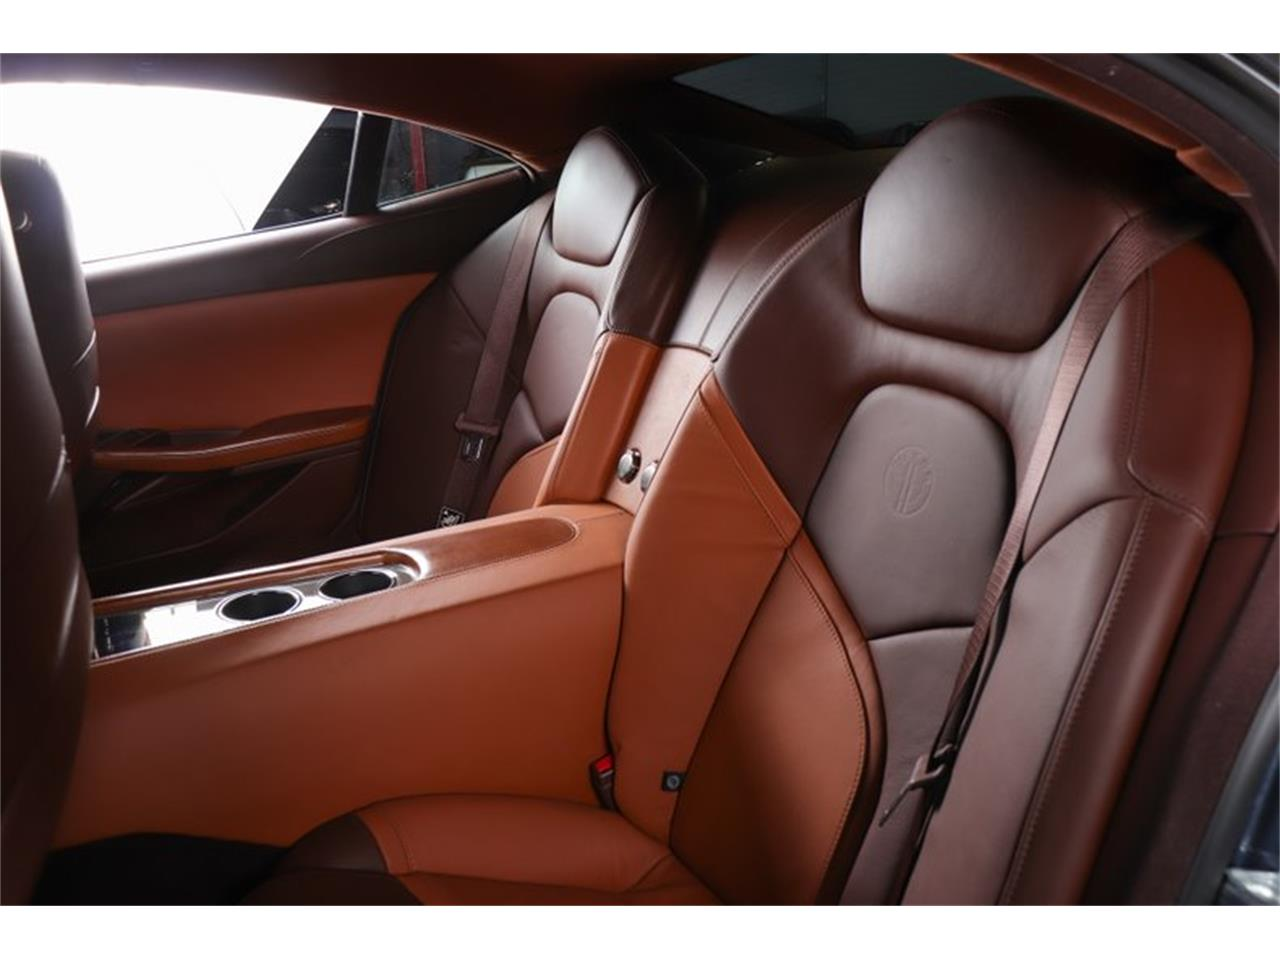 2012 Fisker Karma for sale in New Hyde Park, NY – photo 33